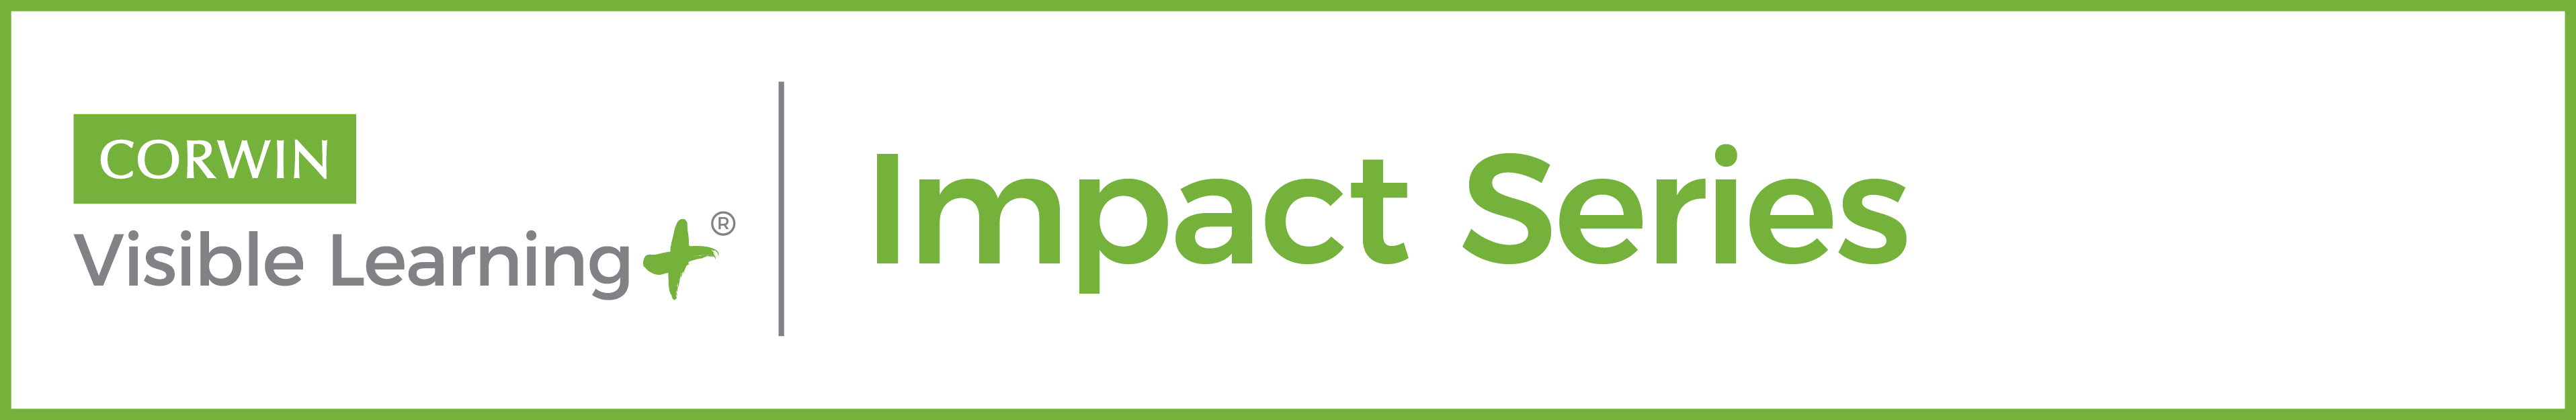 Visible Learning Impact Series